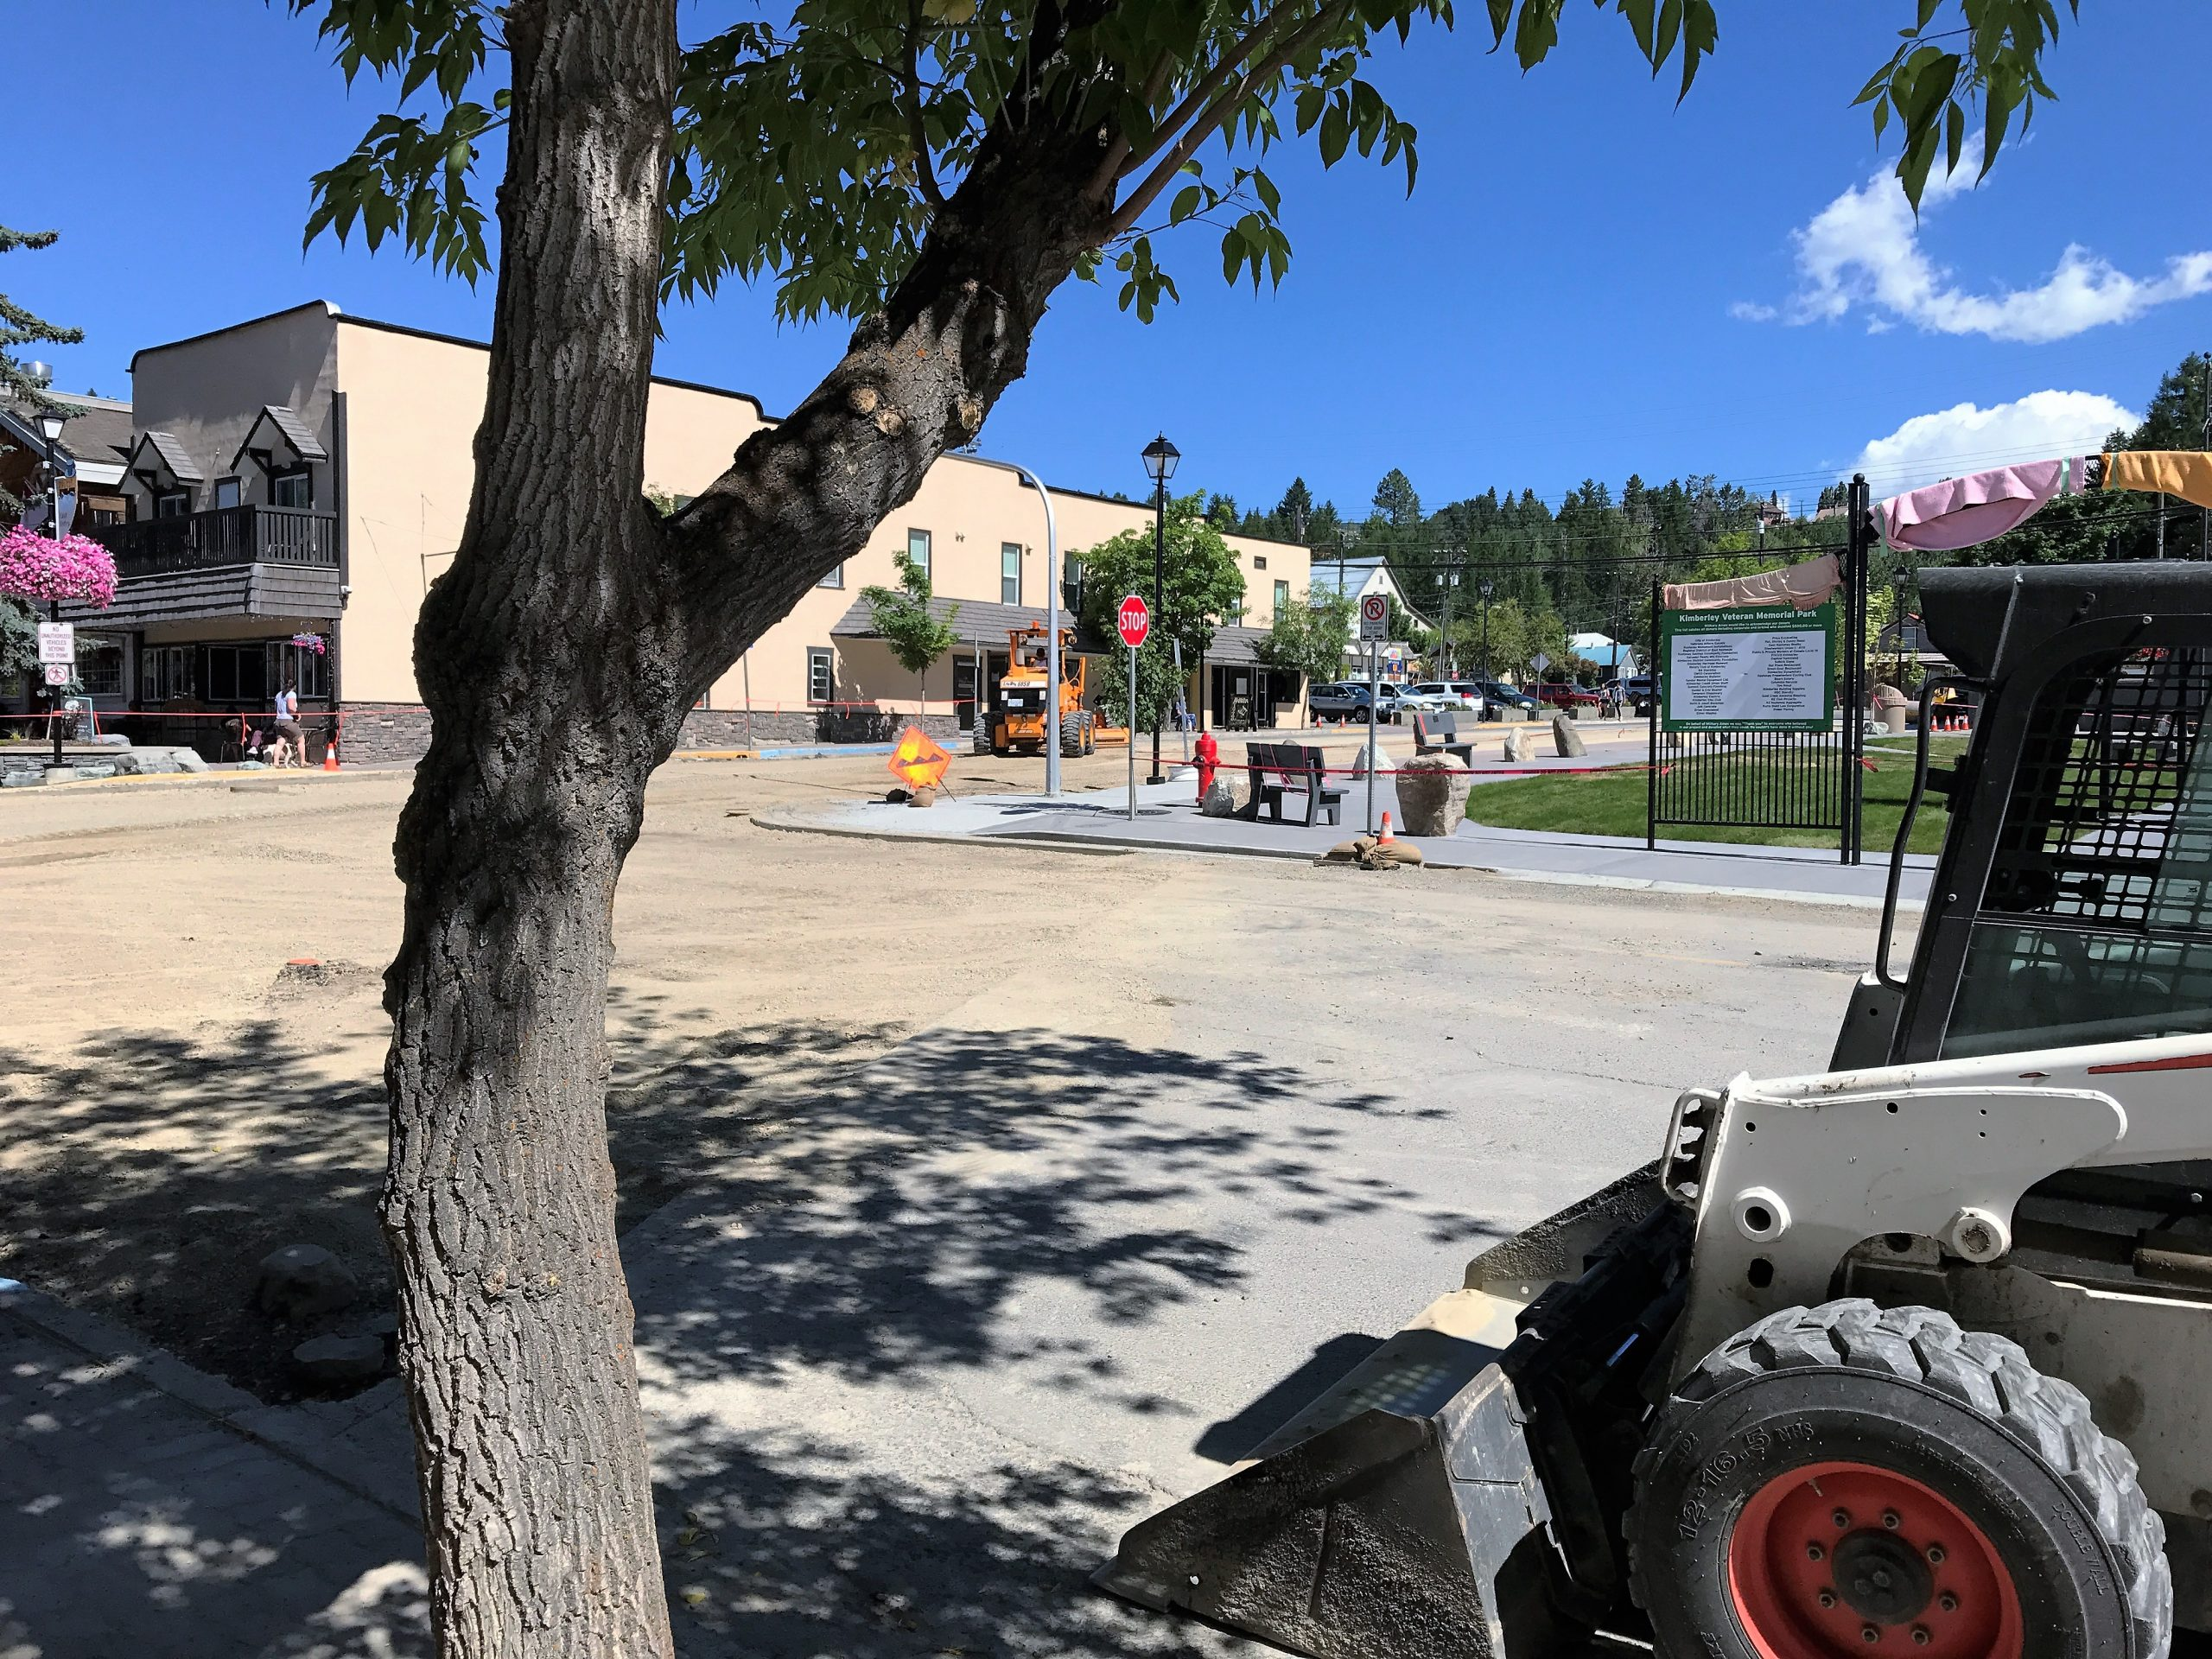 Kimberley's Wallinger/Spokane intersection closed due to construction